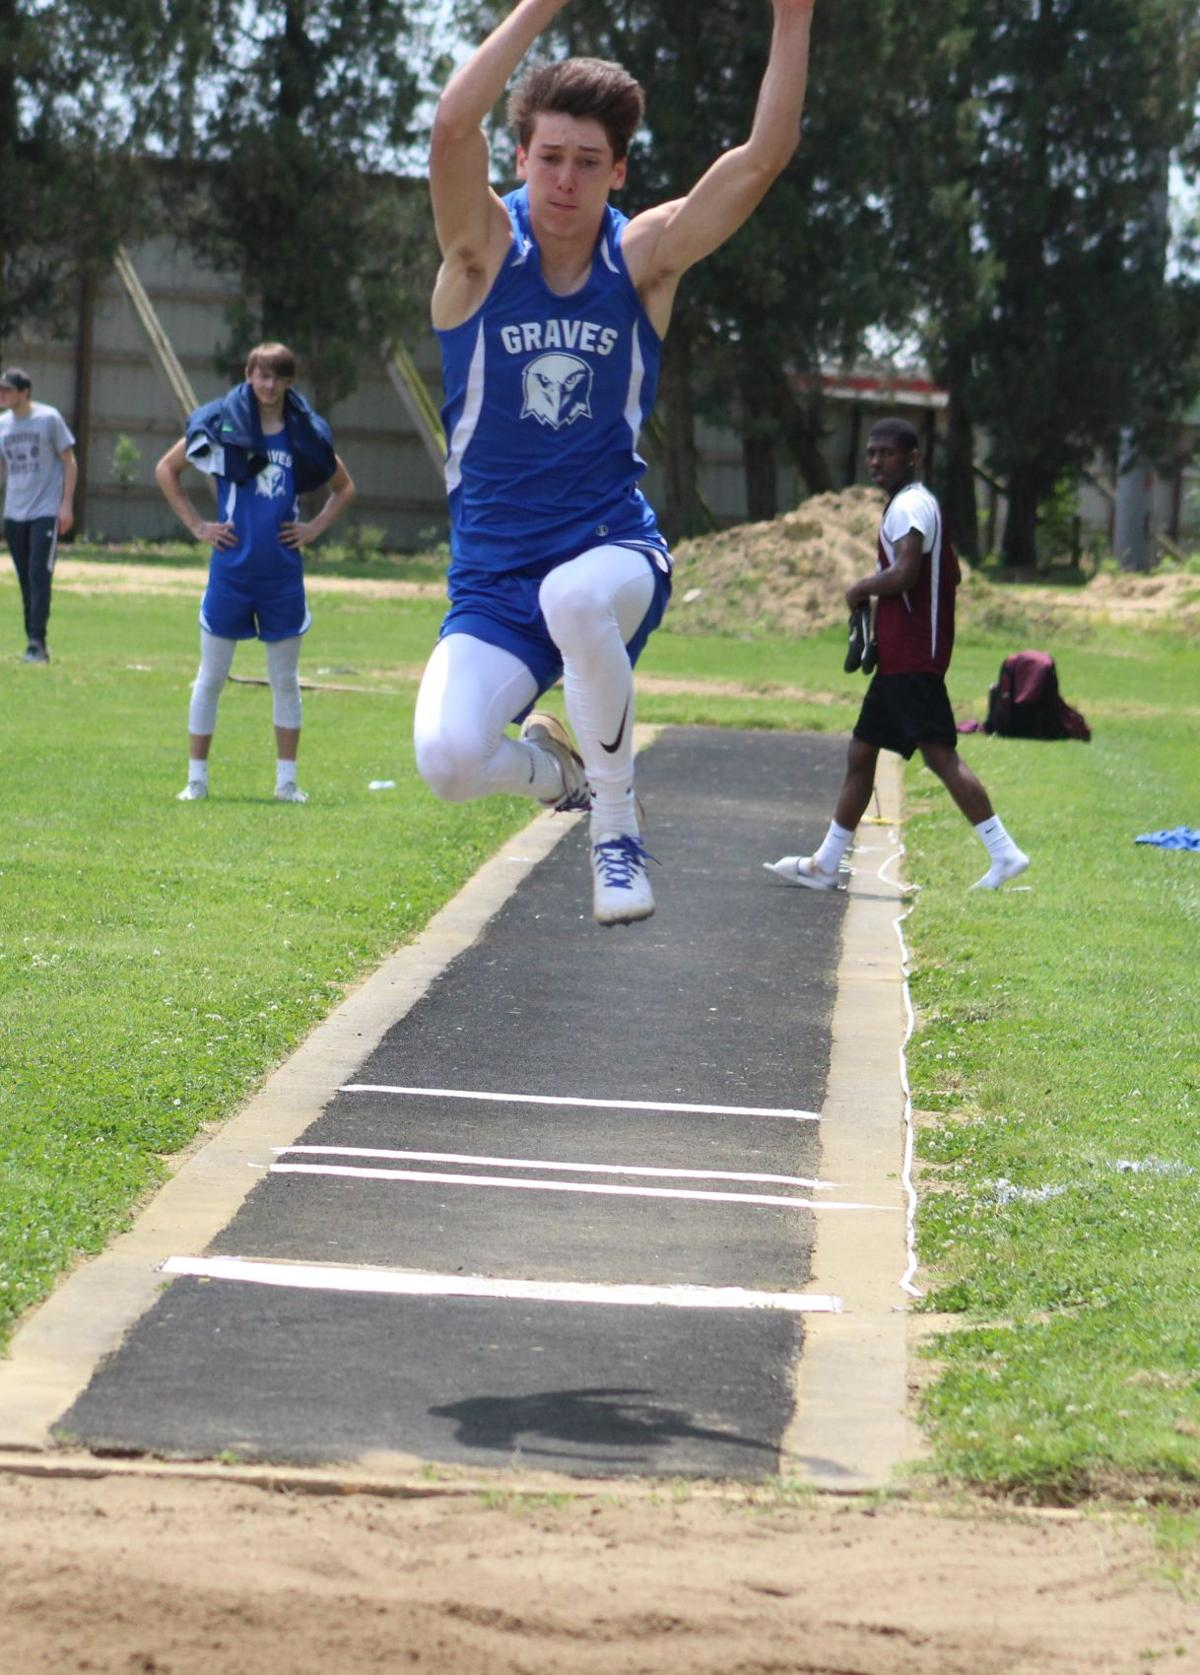 Madding heading to state in jumps